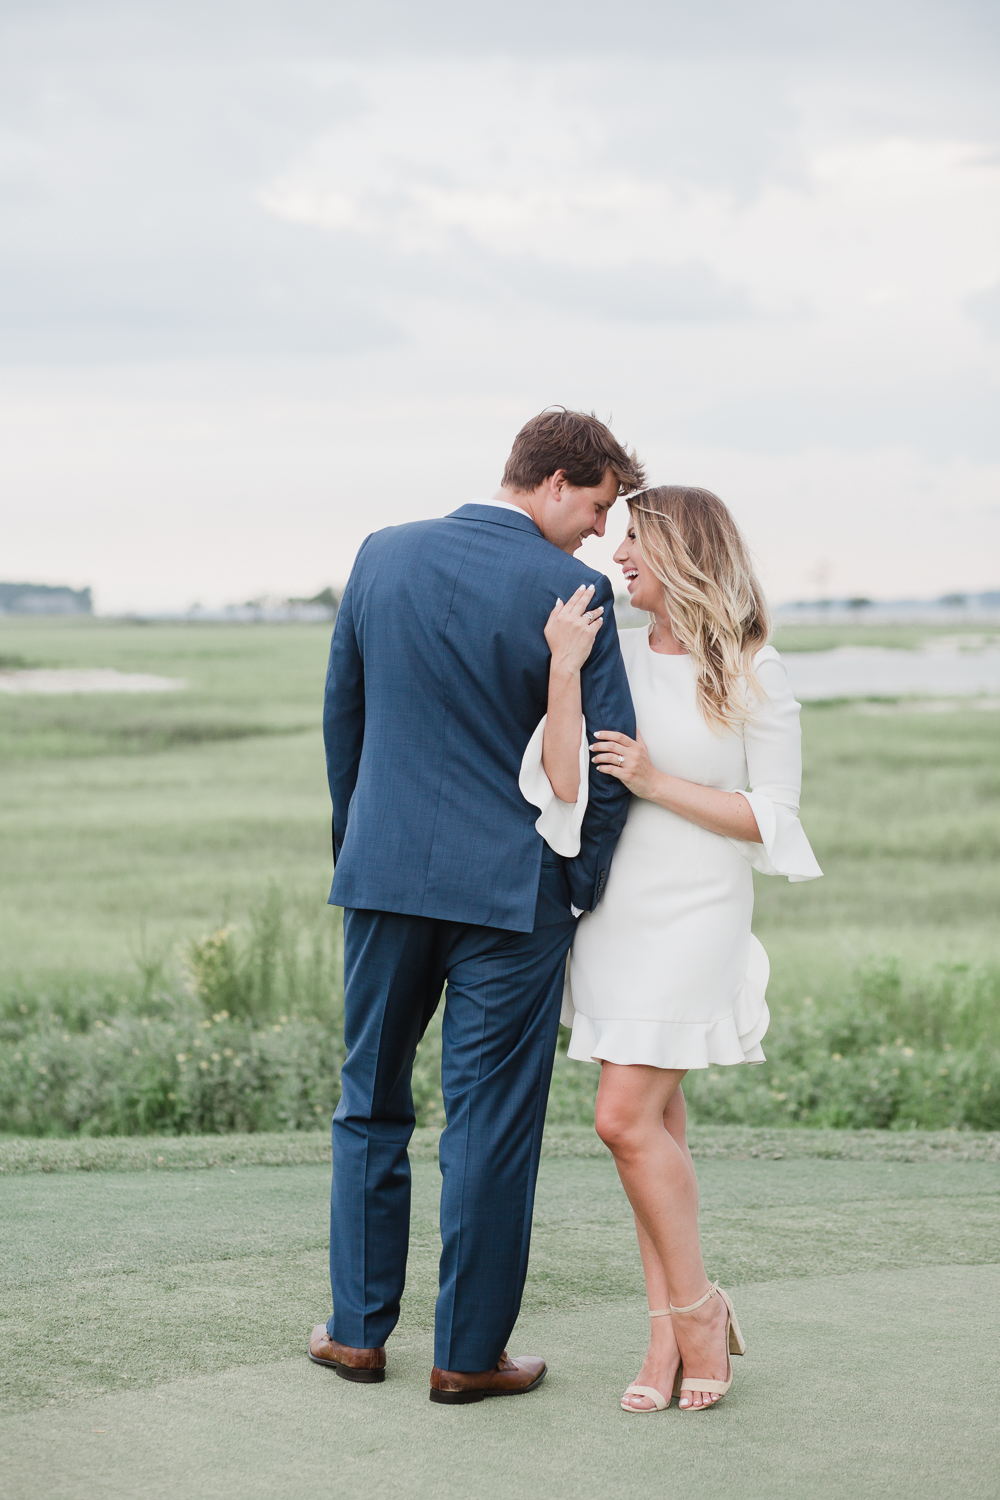 emily baucom charleston wedding photographer (25 of 25)